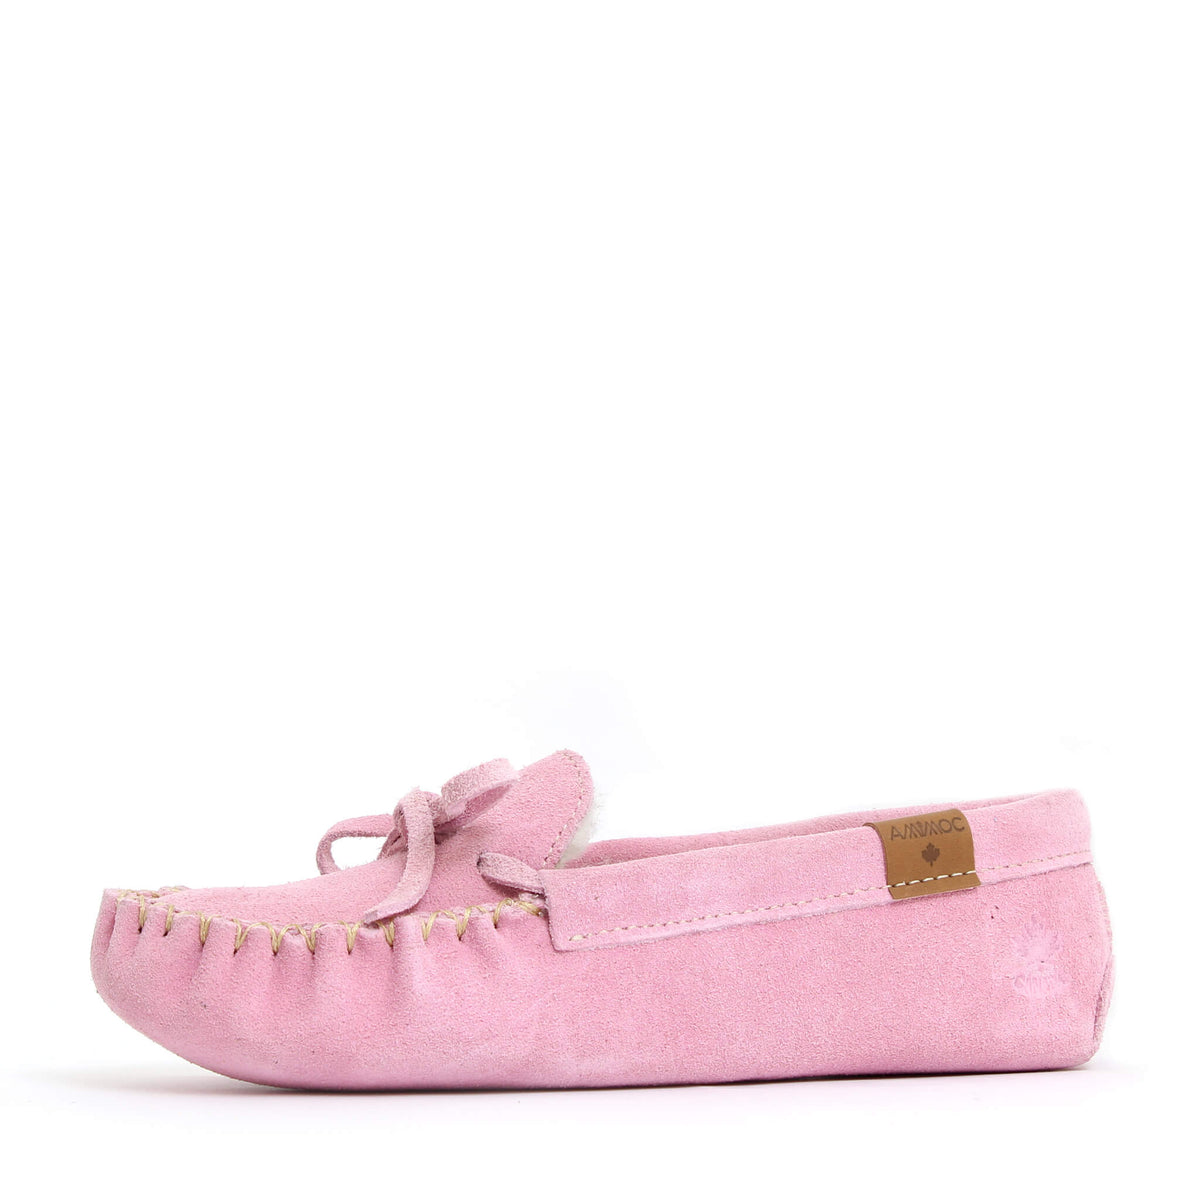 Istah lined loafer